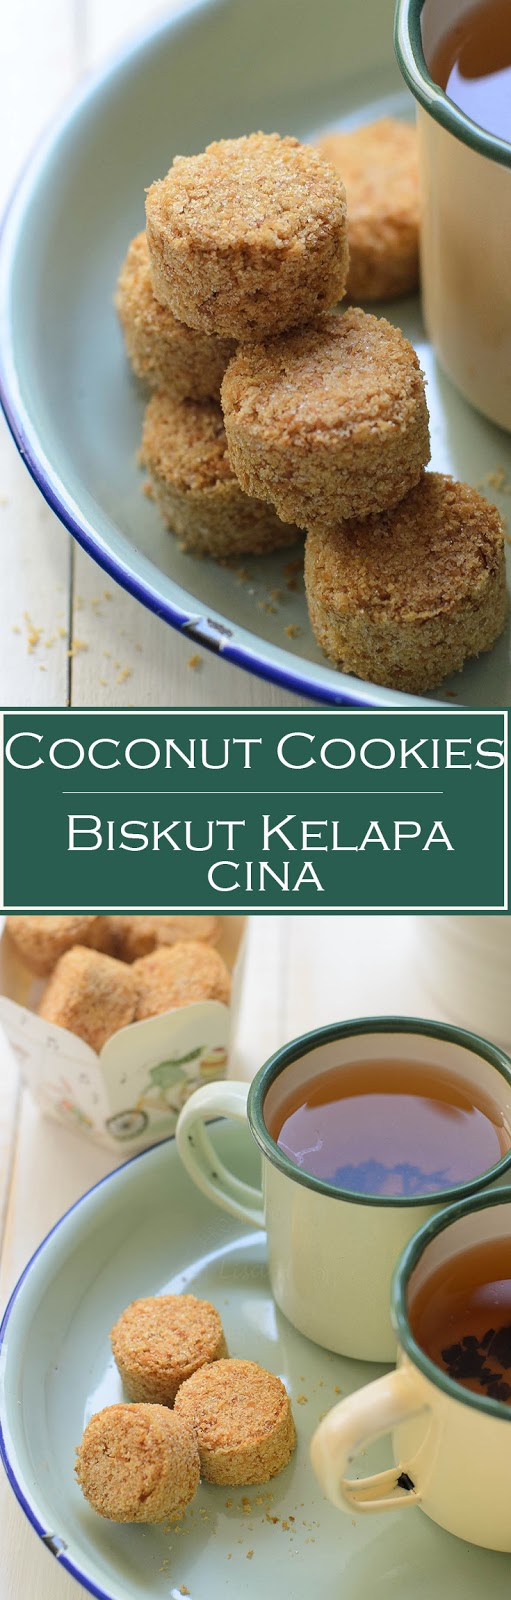 Coconut cookies reminder of childhood favourite school snack.